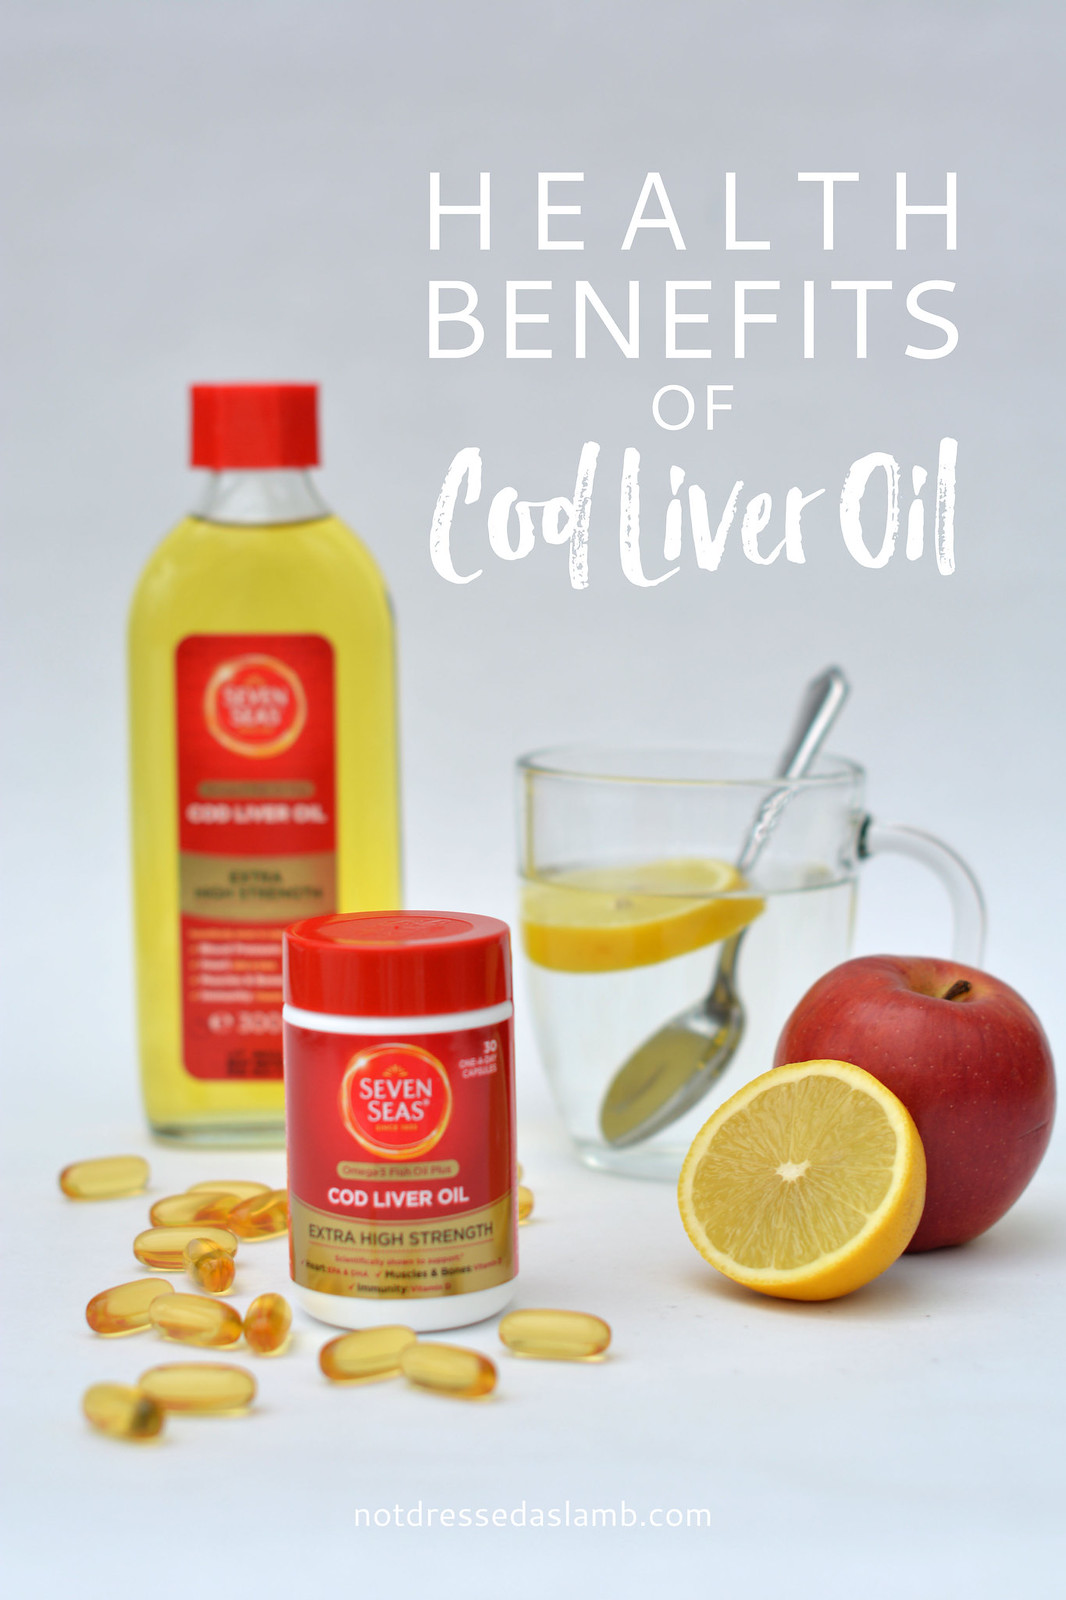 Cod Liver Oil and Its Health Benefits